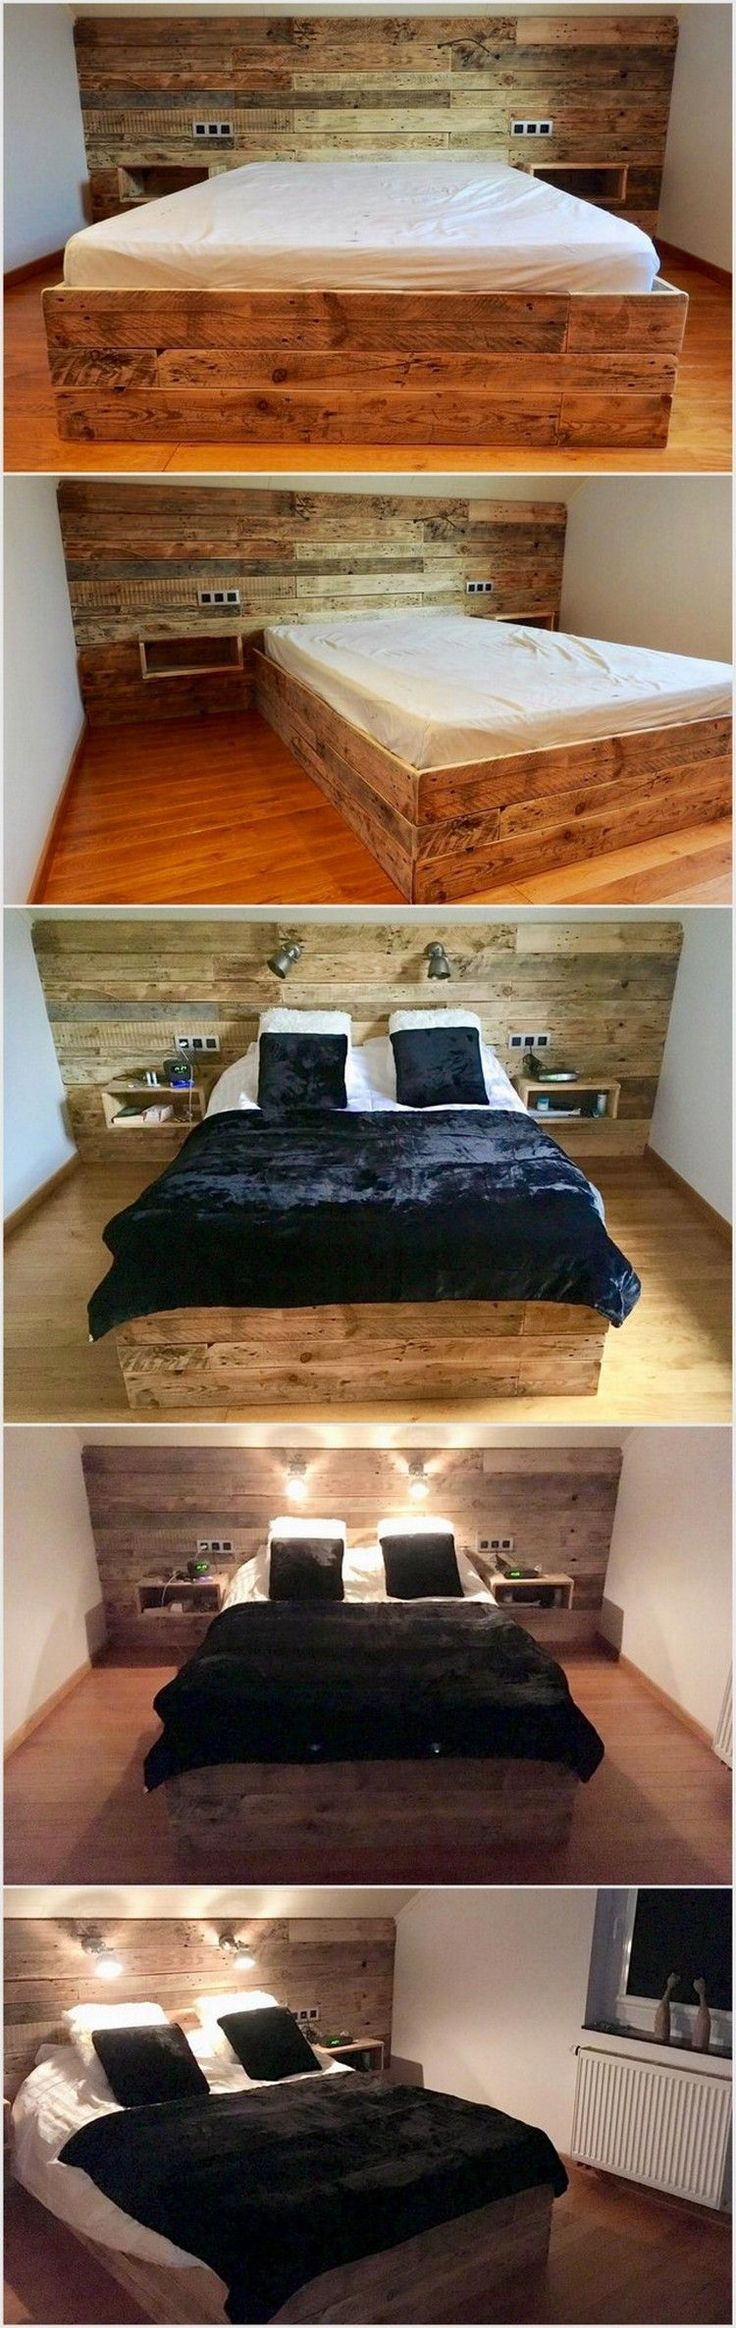 Pallet Bed with Headboard and Lights